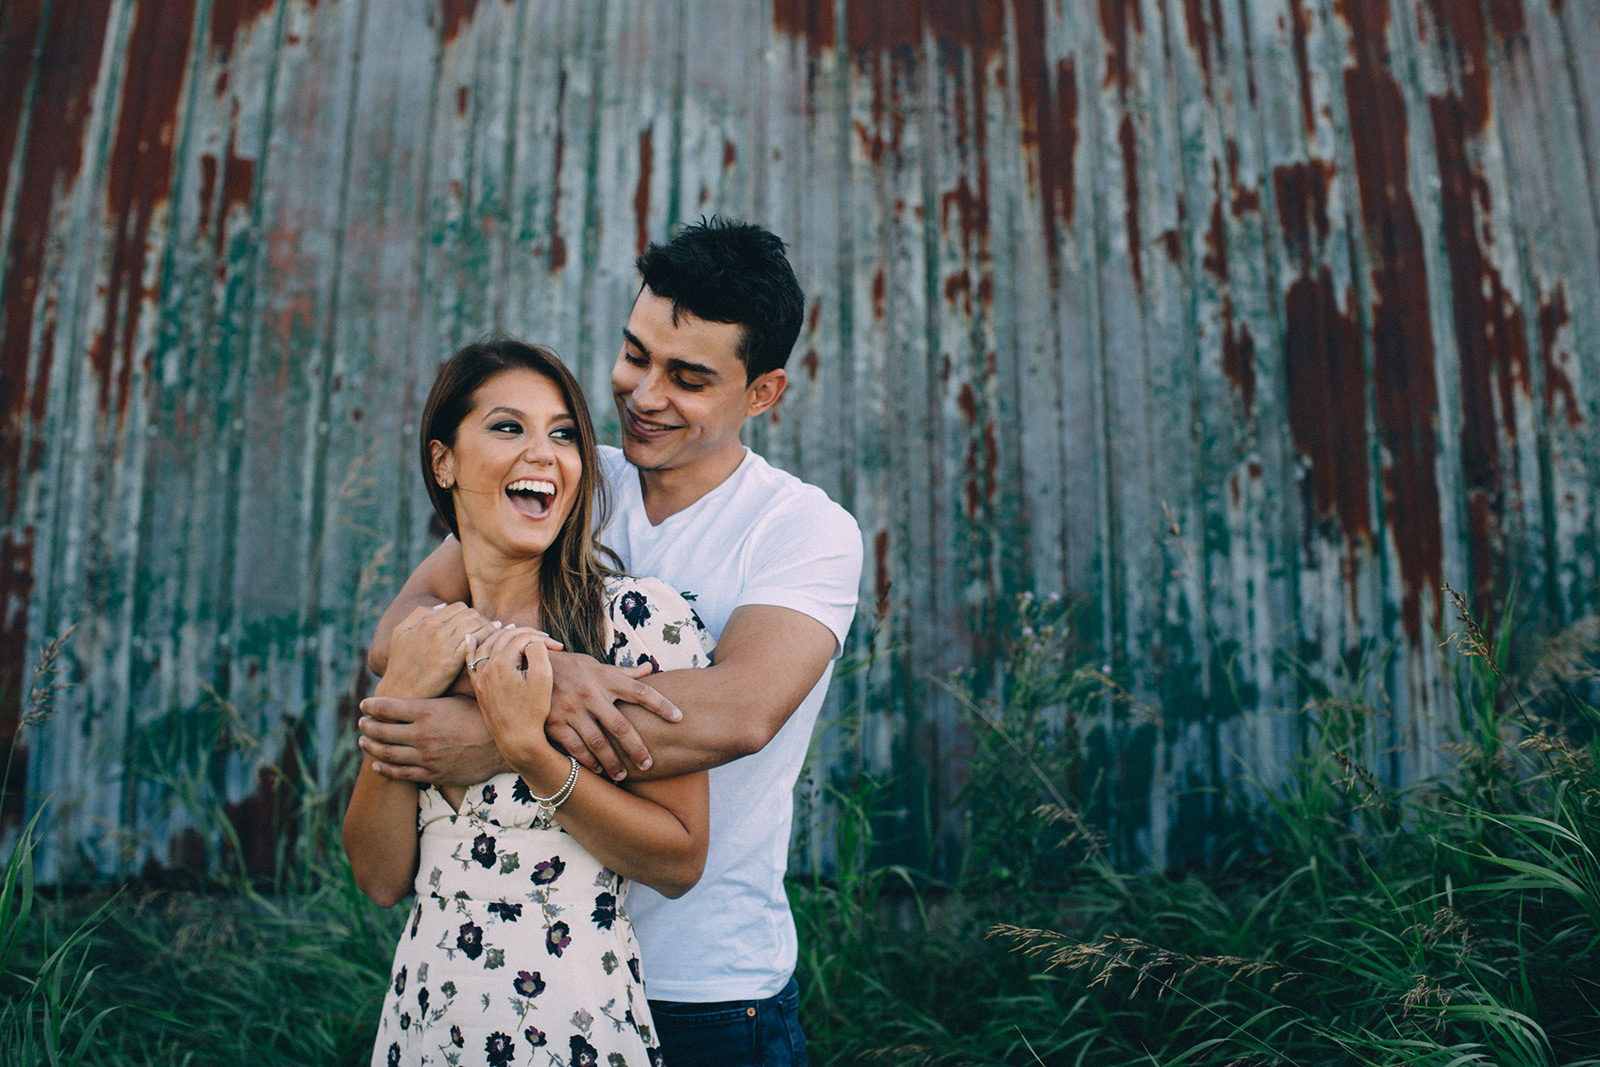 Rural-Ontario-modern-lifestyle-engagement-session-Sam-Wong-Visual-Cravings-AnJ_03